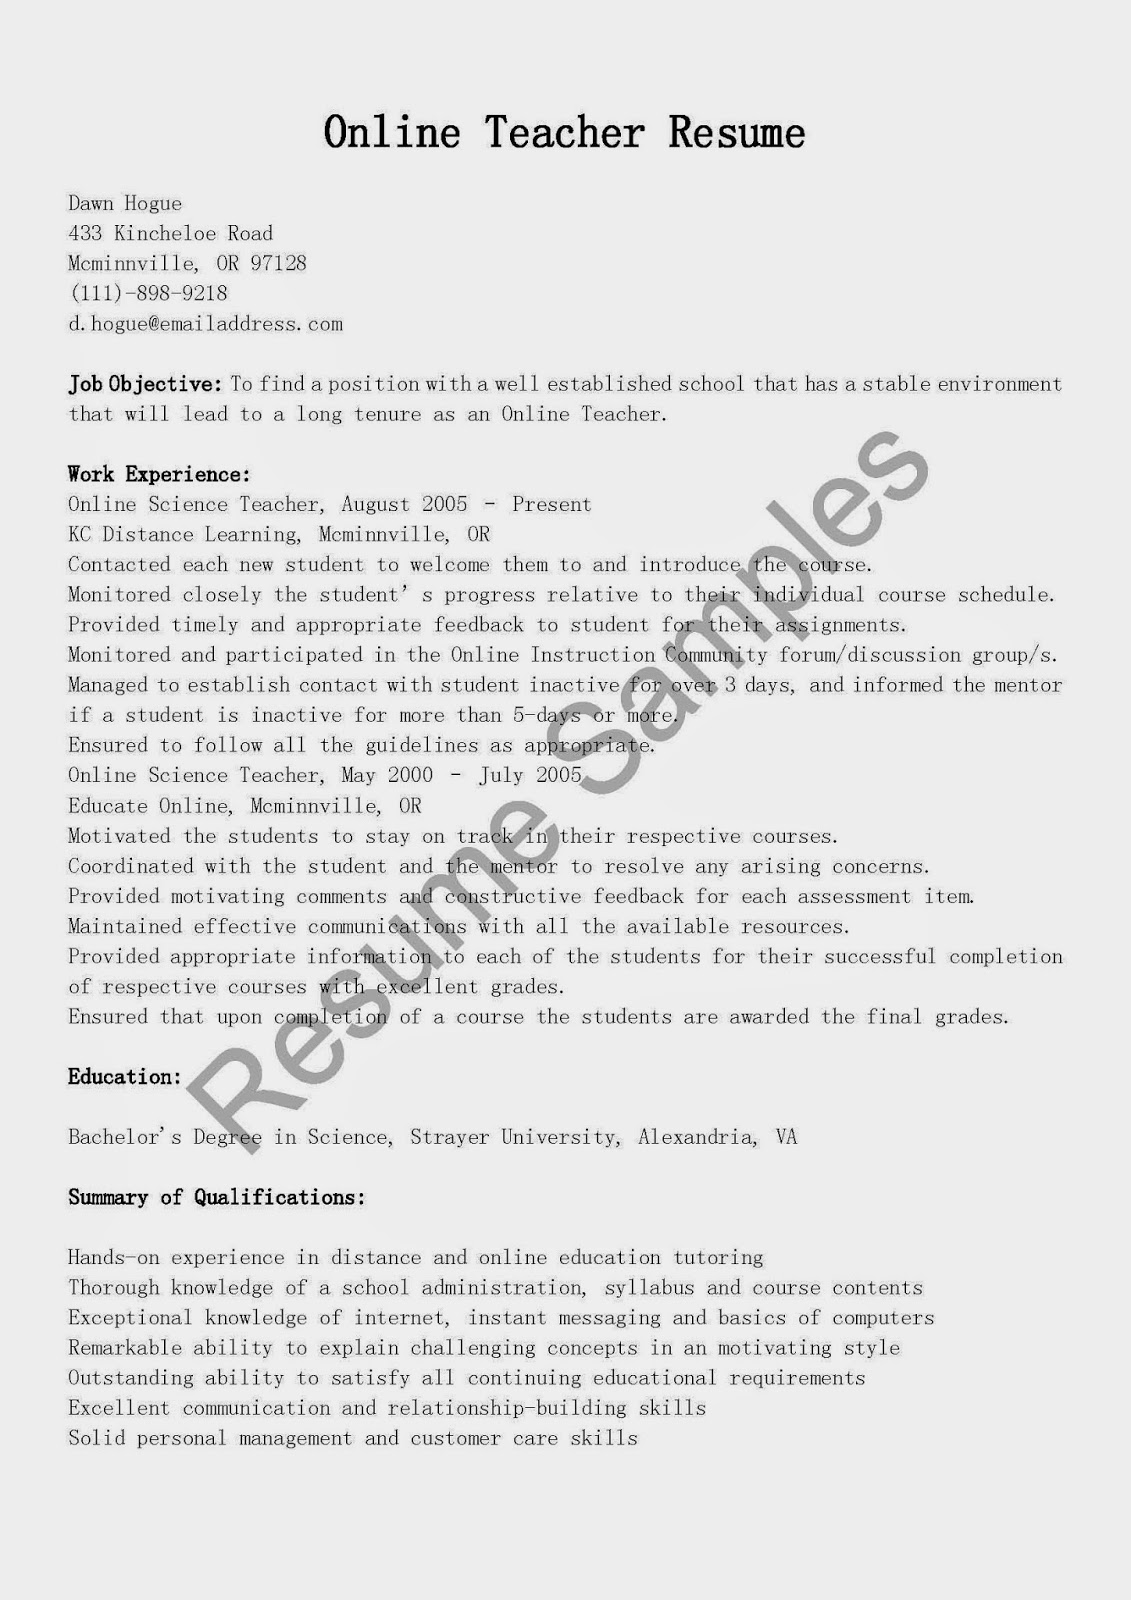 contents of biodata